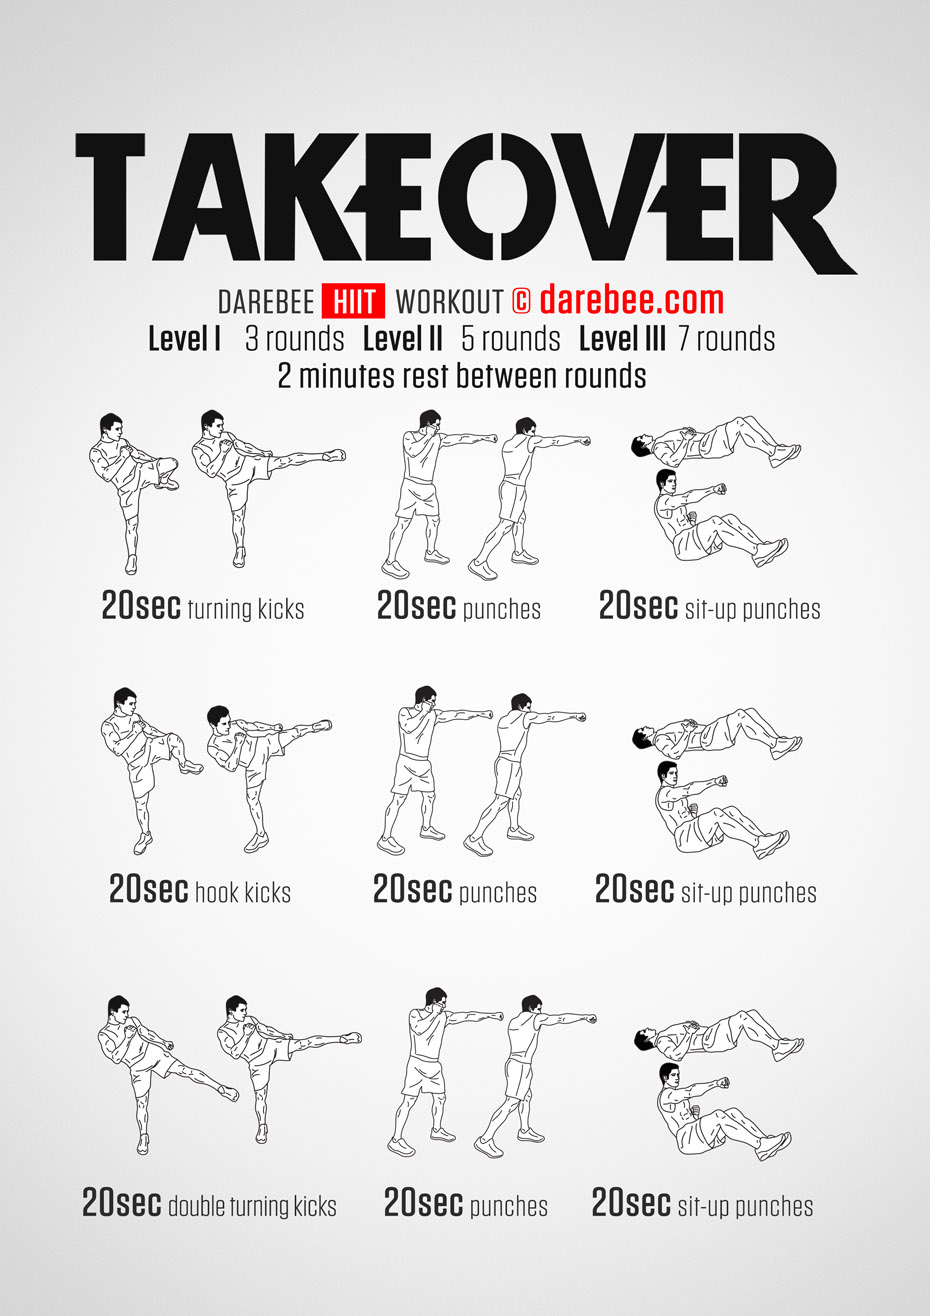 Takeover Workout